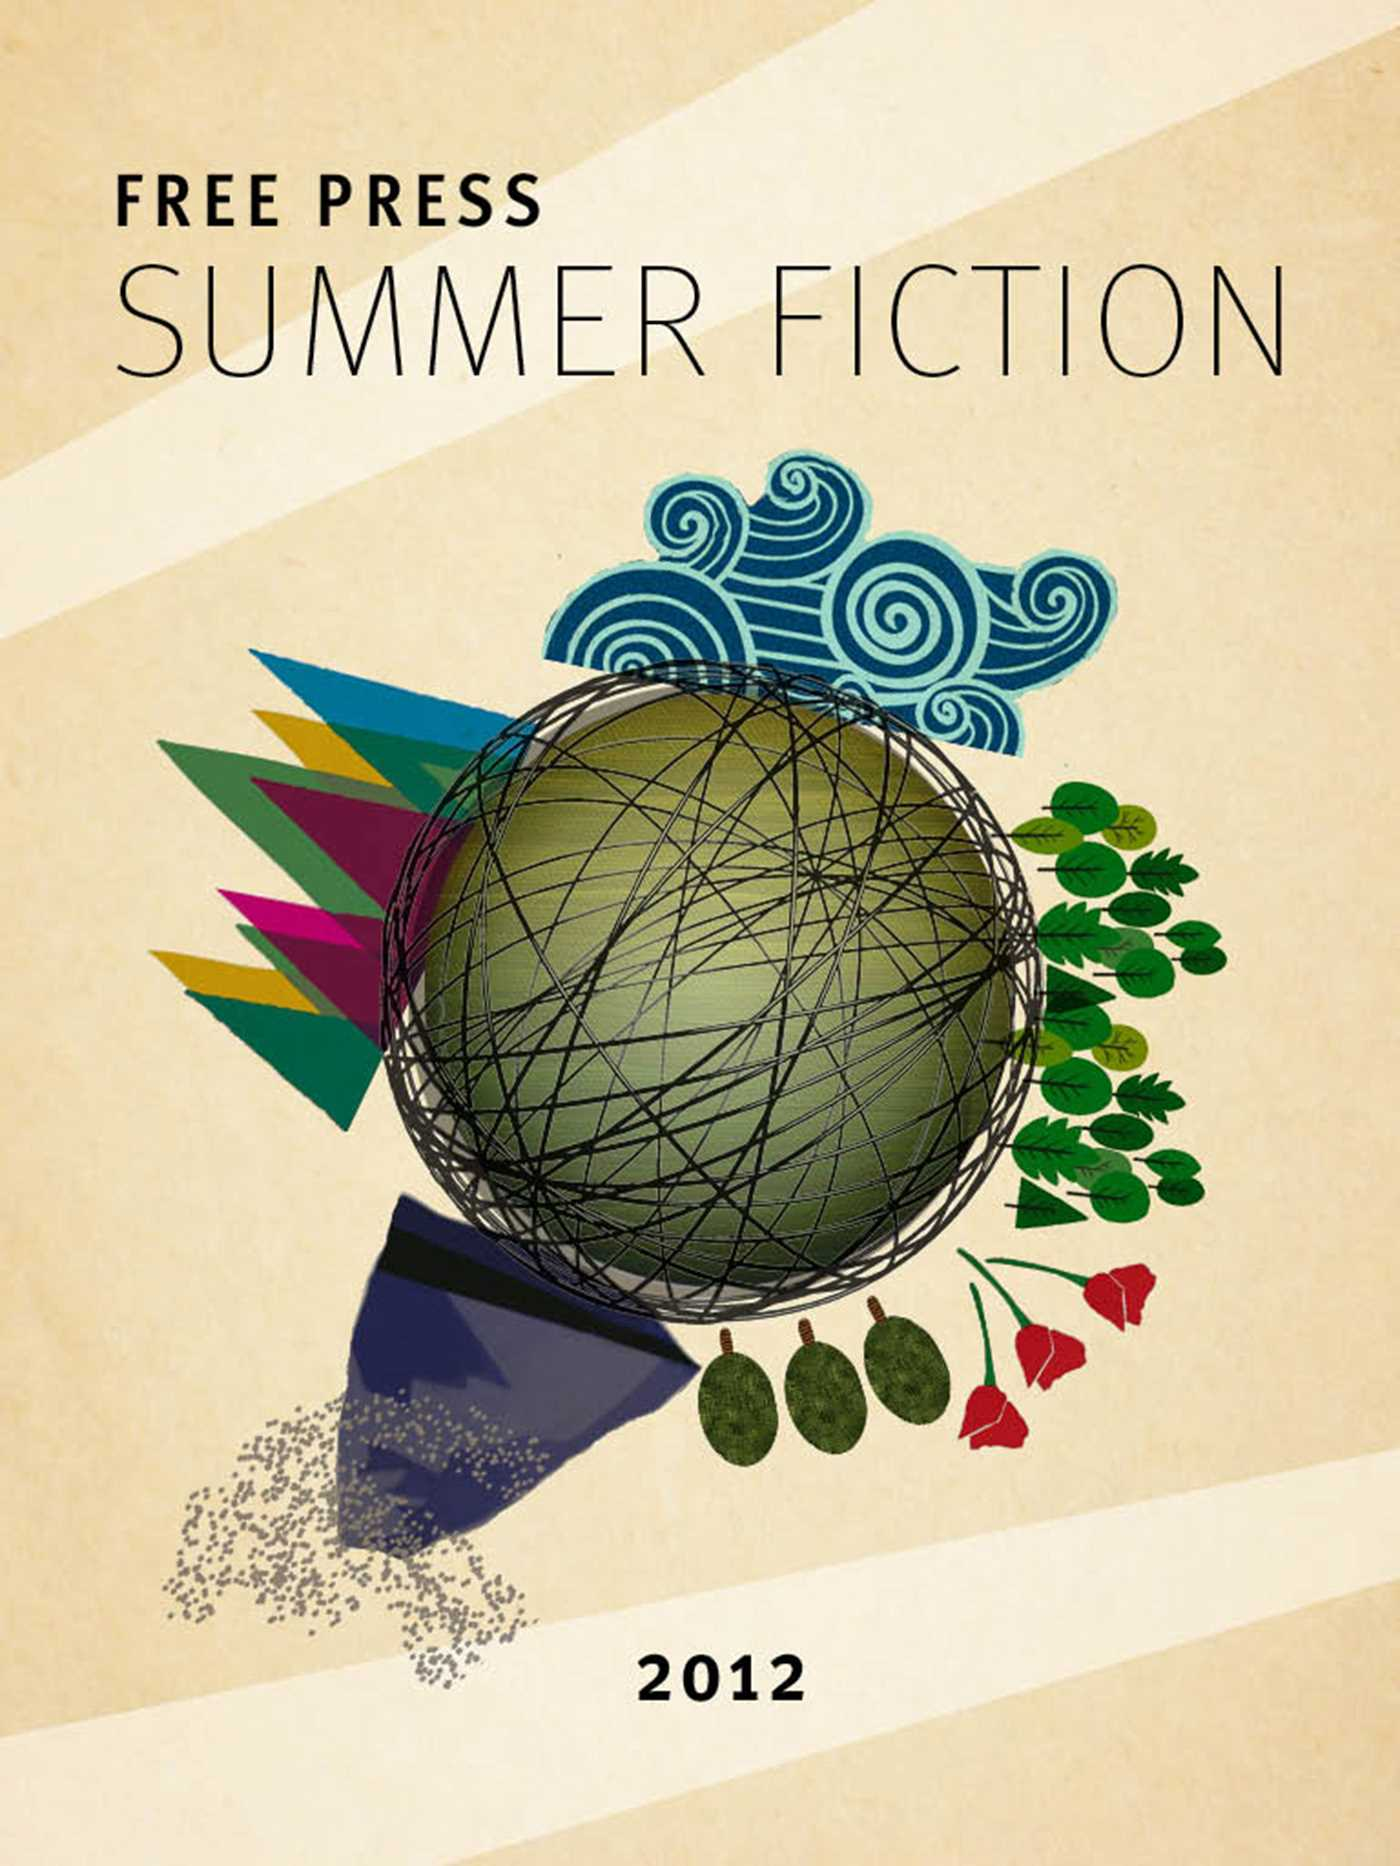 Free-press-summer-fiction-sampler-9781451679342_hr